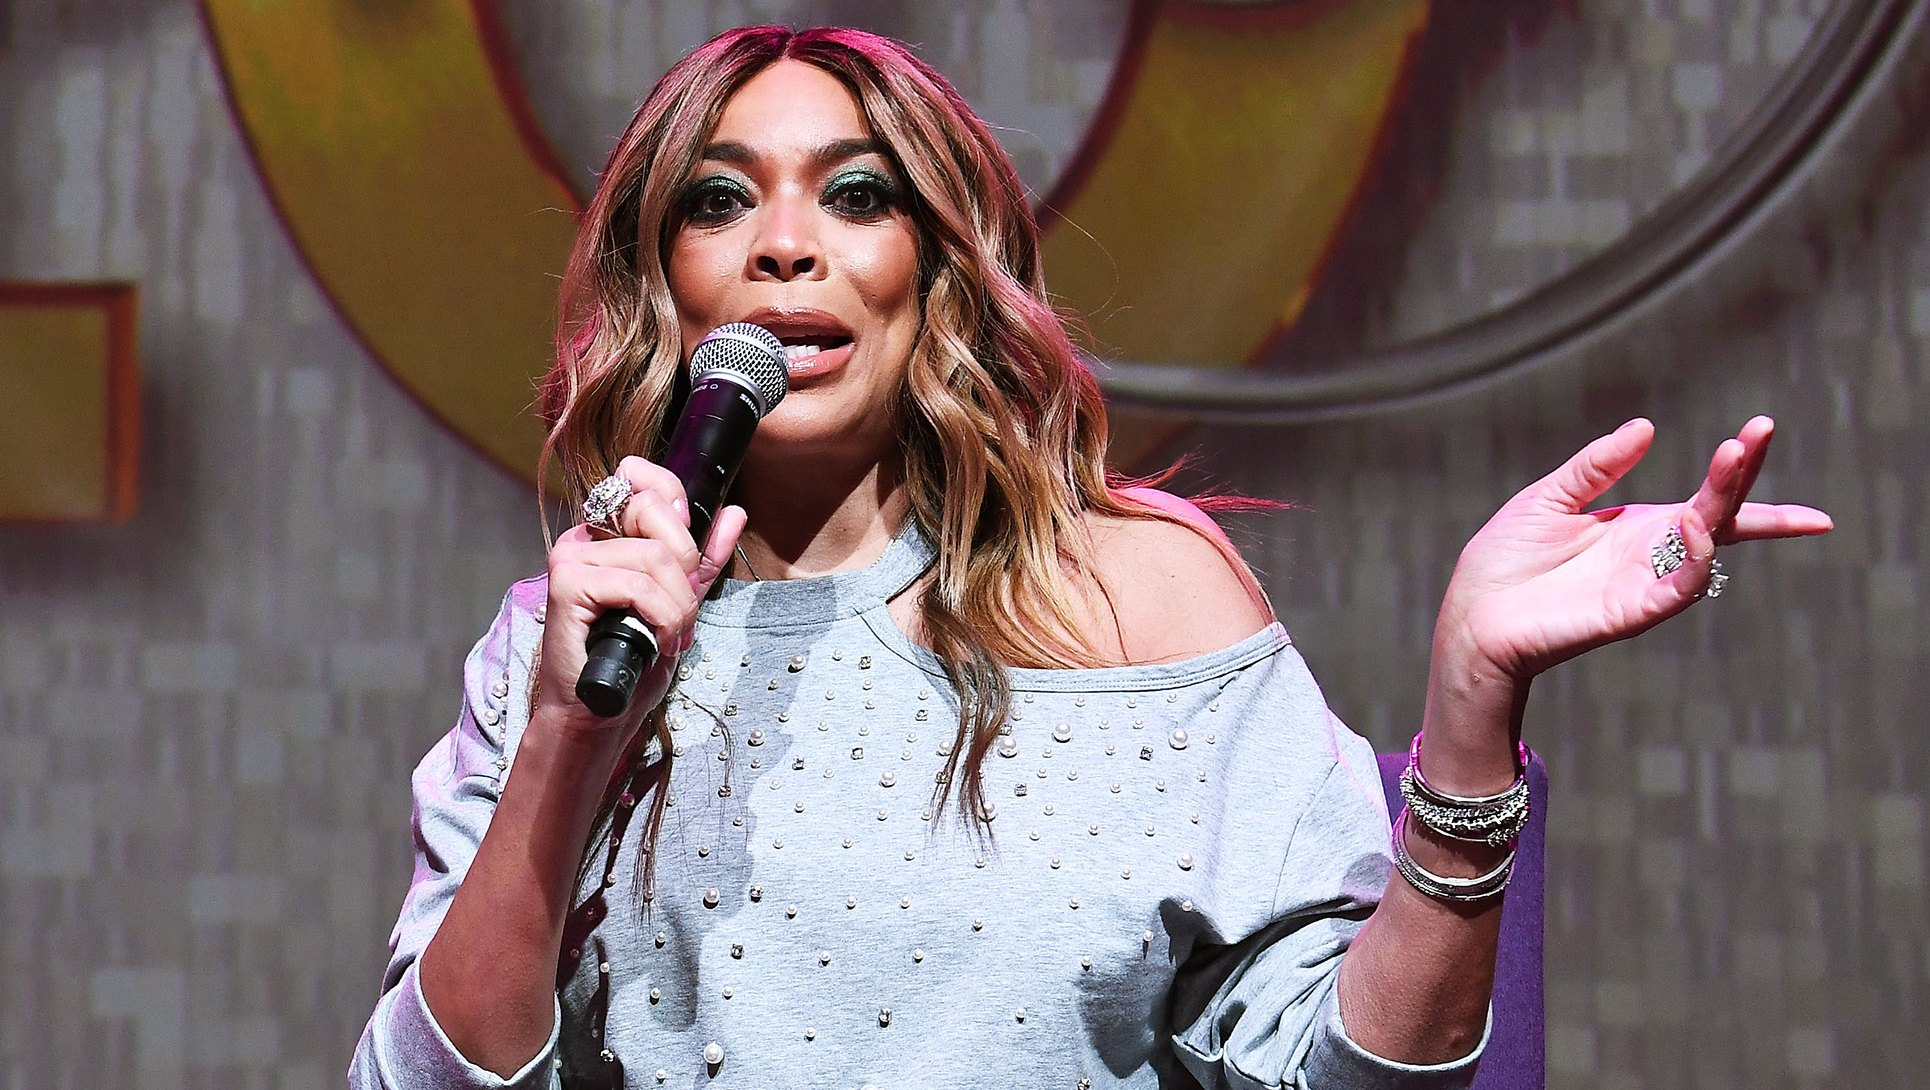 Wendy Williams Set to Return to 'The Wendy Williams Show' After Apologizing for 'Less Than Stellar' Shows